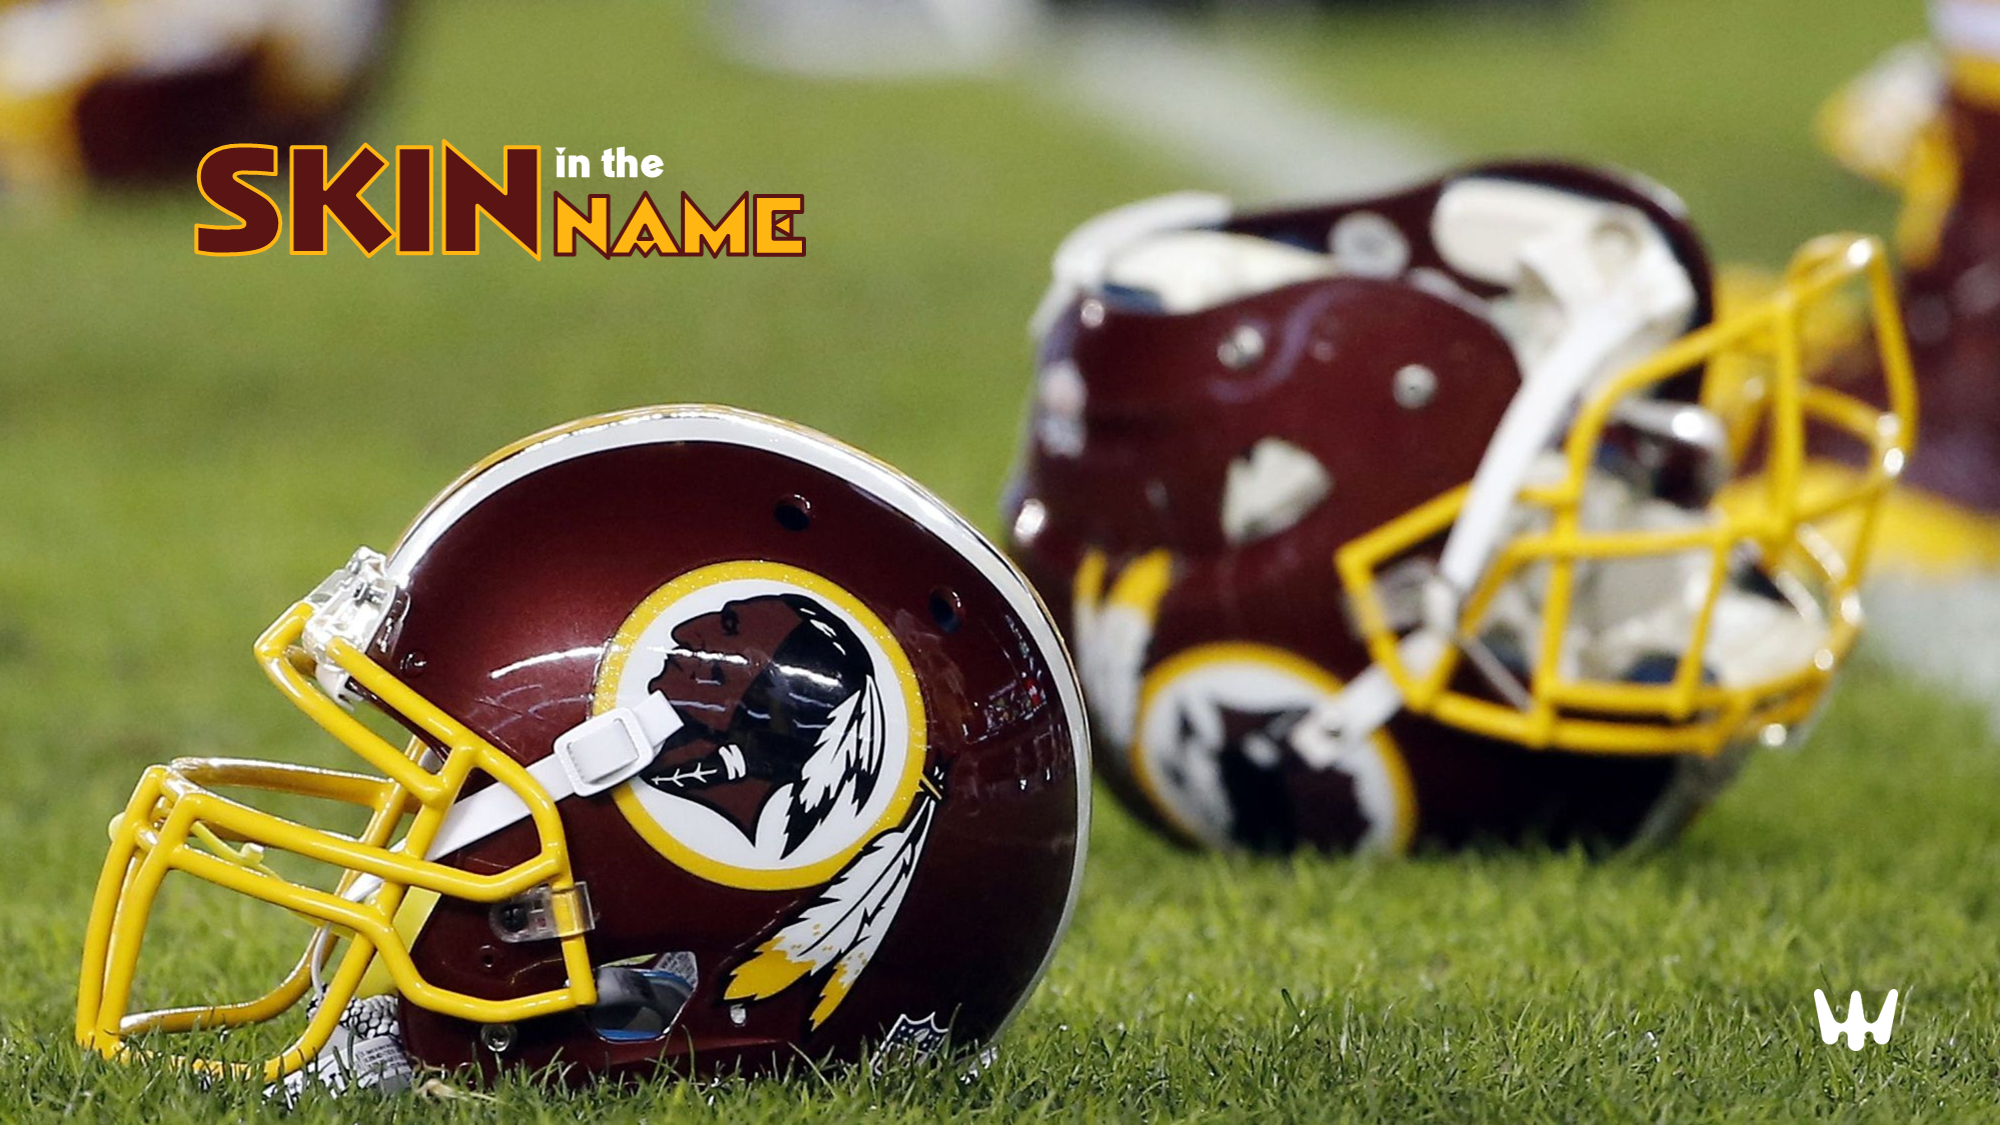 Wolvereye's study featured in The Washington Post examines the emotions Native Americans feel towards the team name Redskins. Link to The Washington Post article  https://www.washingtonpost.com/local/a-survey-explores-how-native-americans-feel-about-the-name-washington-redskins-no-its-not-that-survey-this-one-is-new/2019/08/09/e38553bc-b581-11e9-8949-5f36ff92706e_story.html